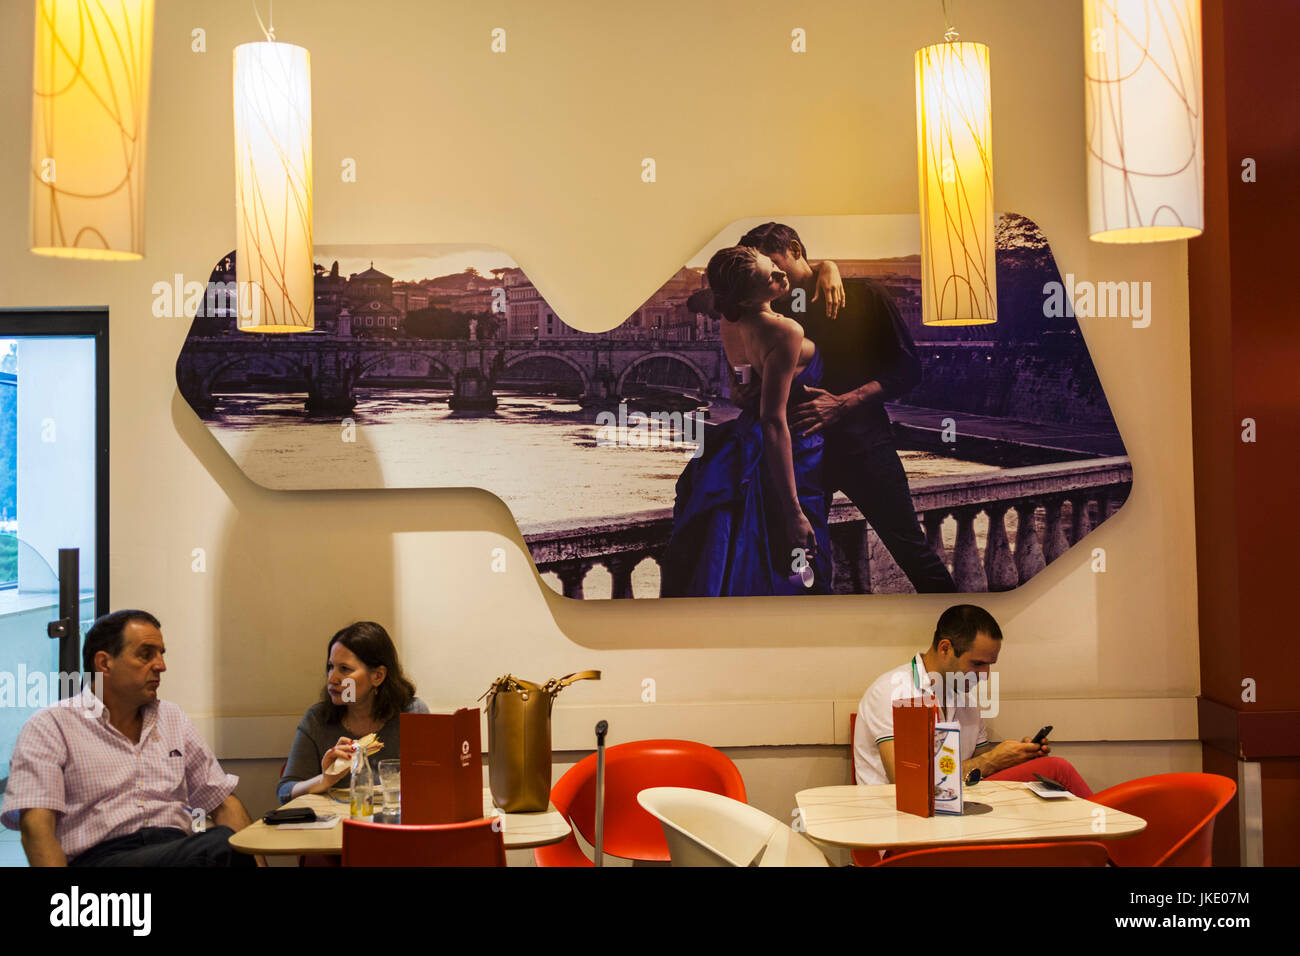 Romania, Bucharest, Bucharest Airport, cafe with seduction mural - Stock Image